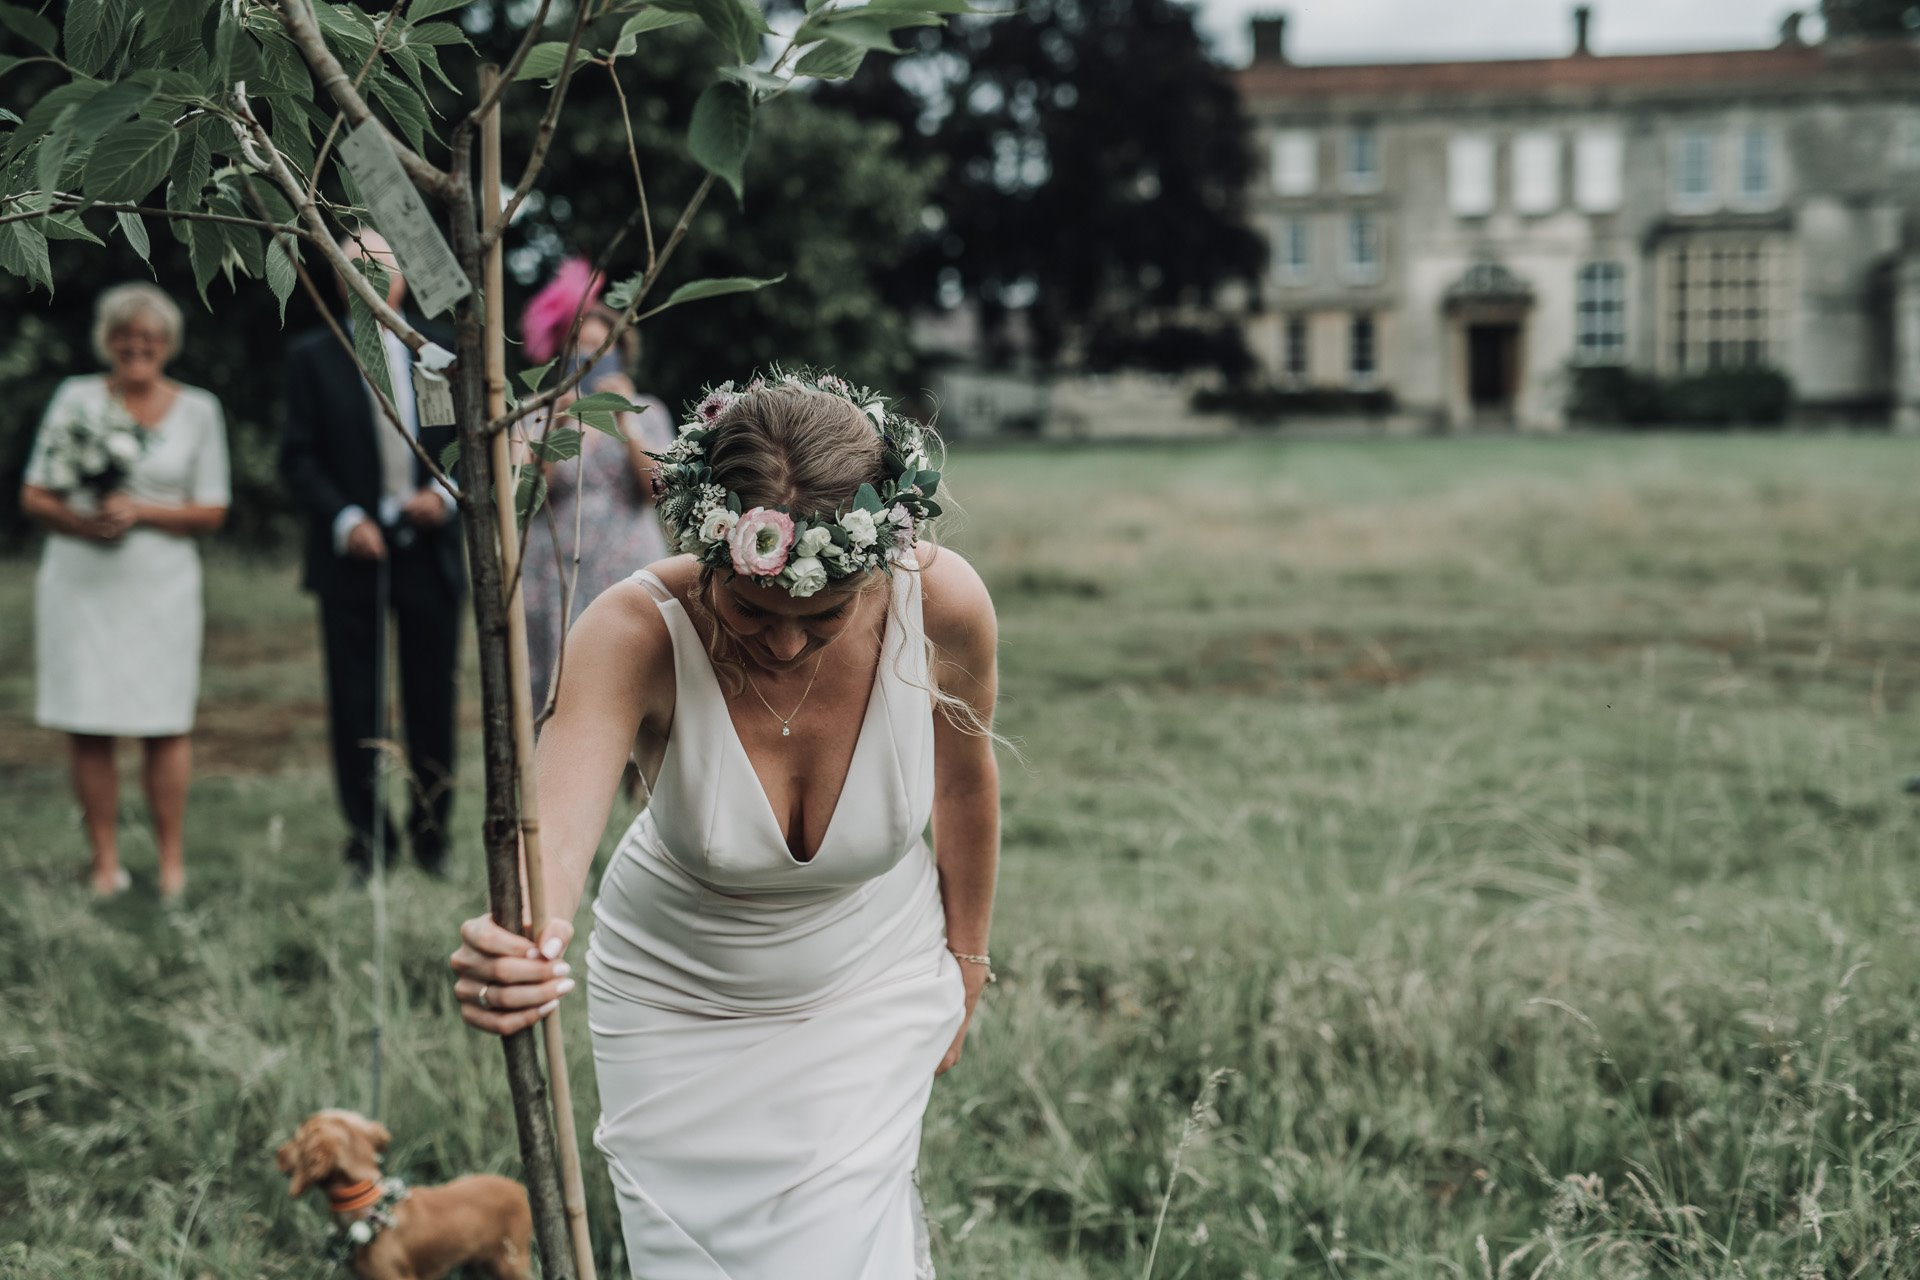 Bride plants a tree on her micro wedding day as part of the ceremony